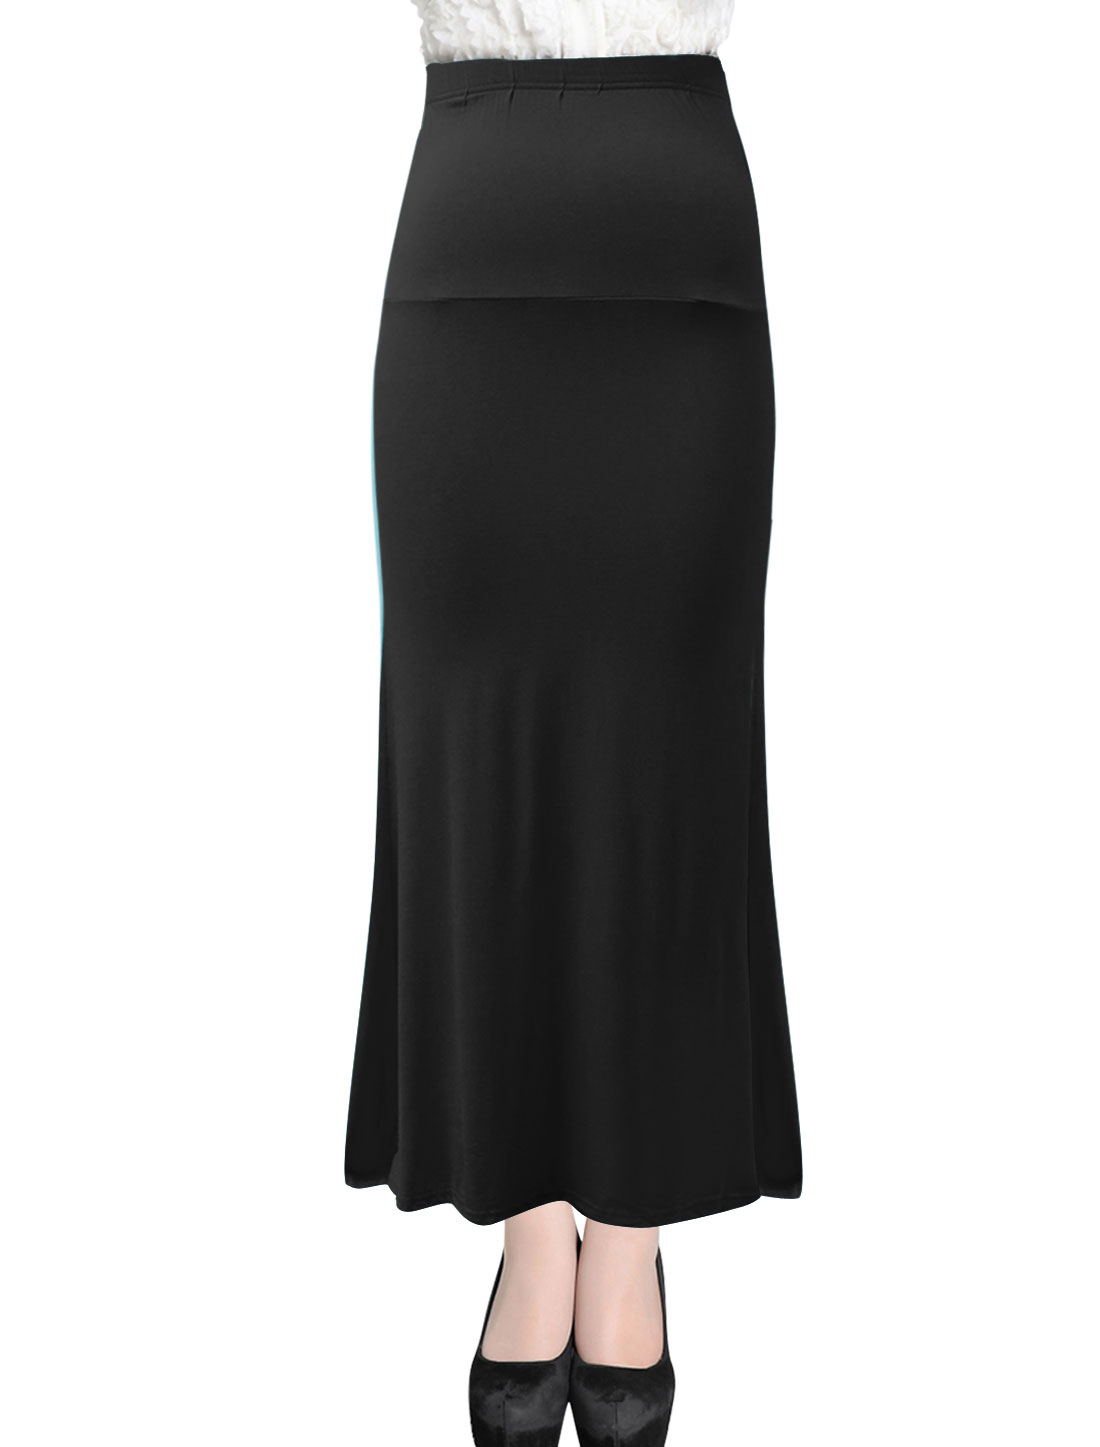 Lady Stretchy Waist Casual Long Straight Skirt Black M